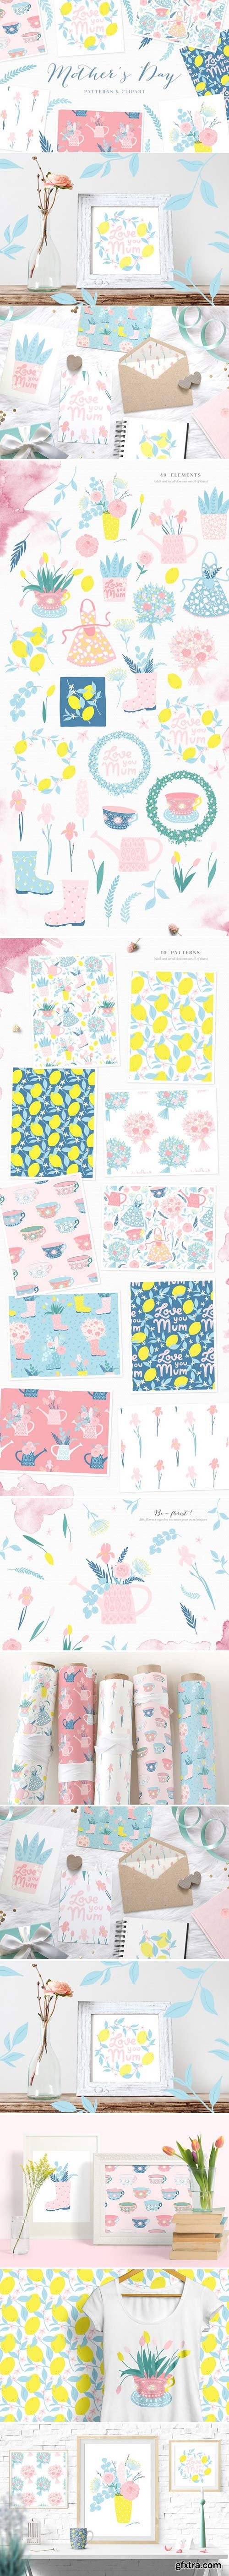 CM - Mother's Day prints and patterns 2371849